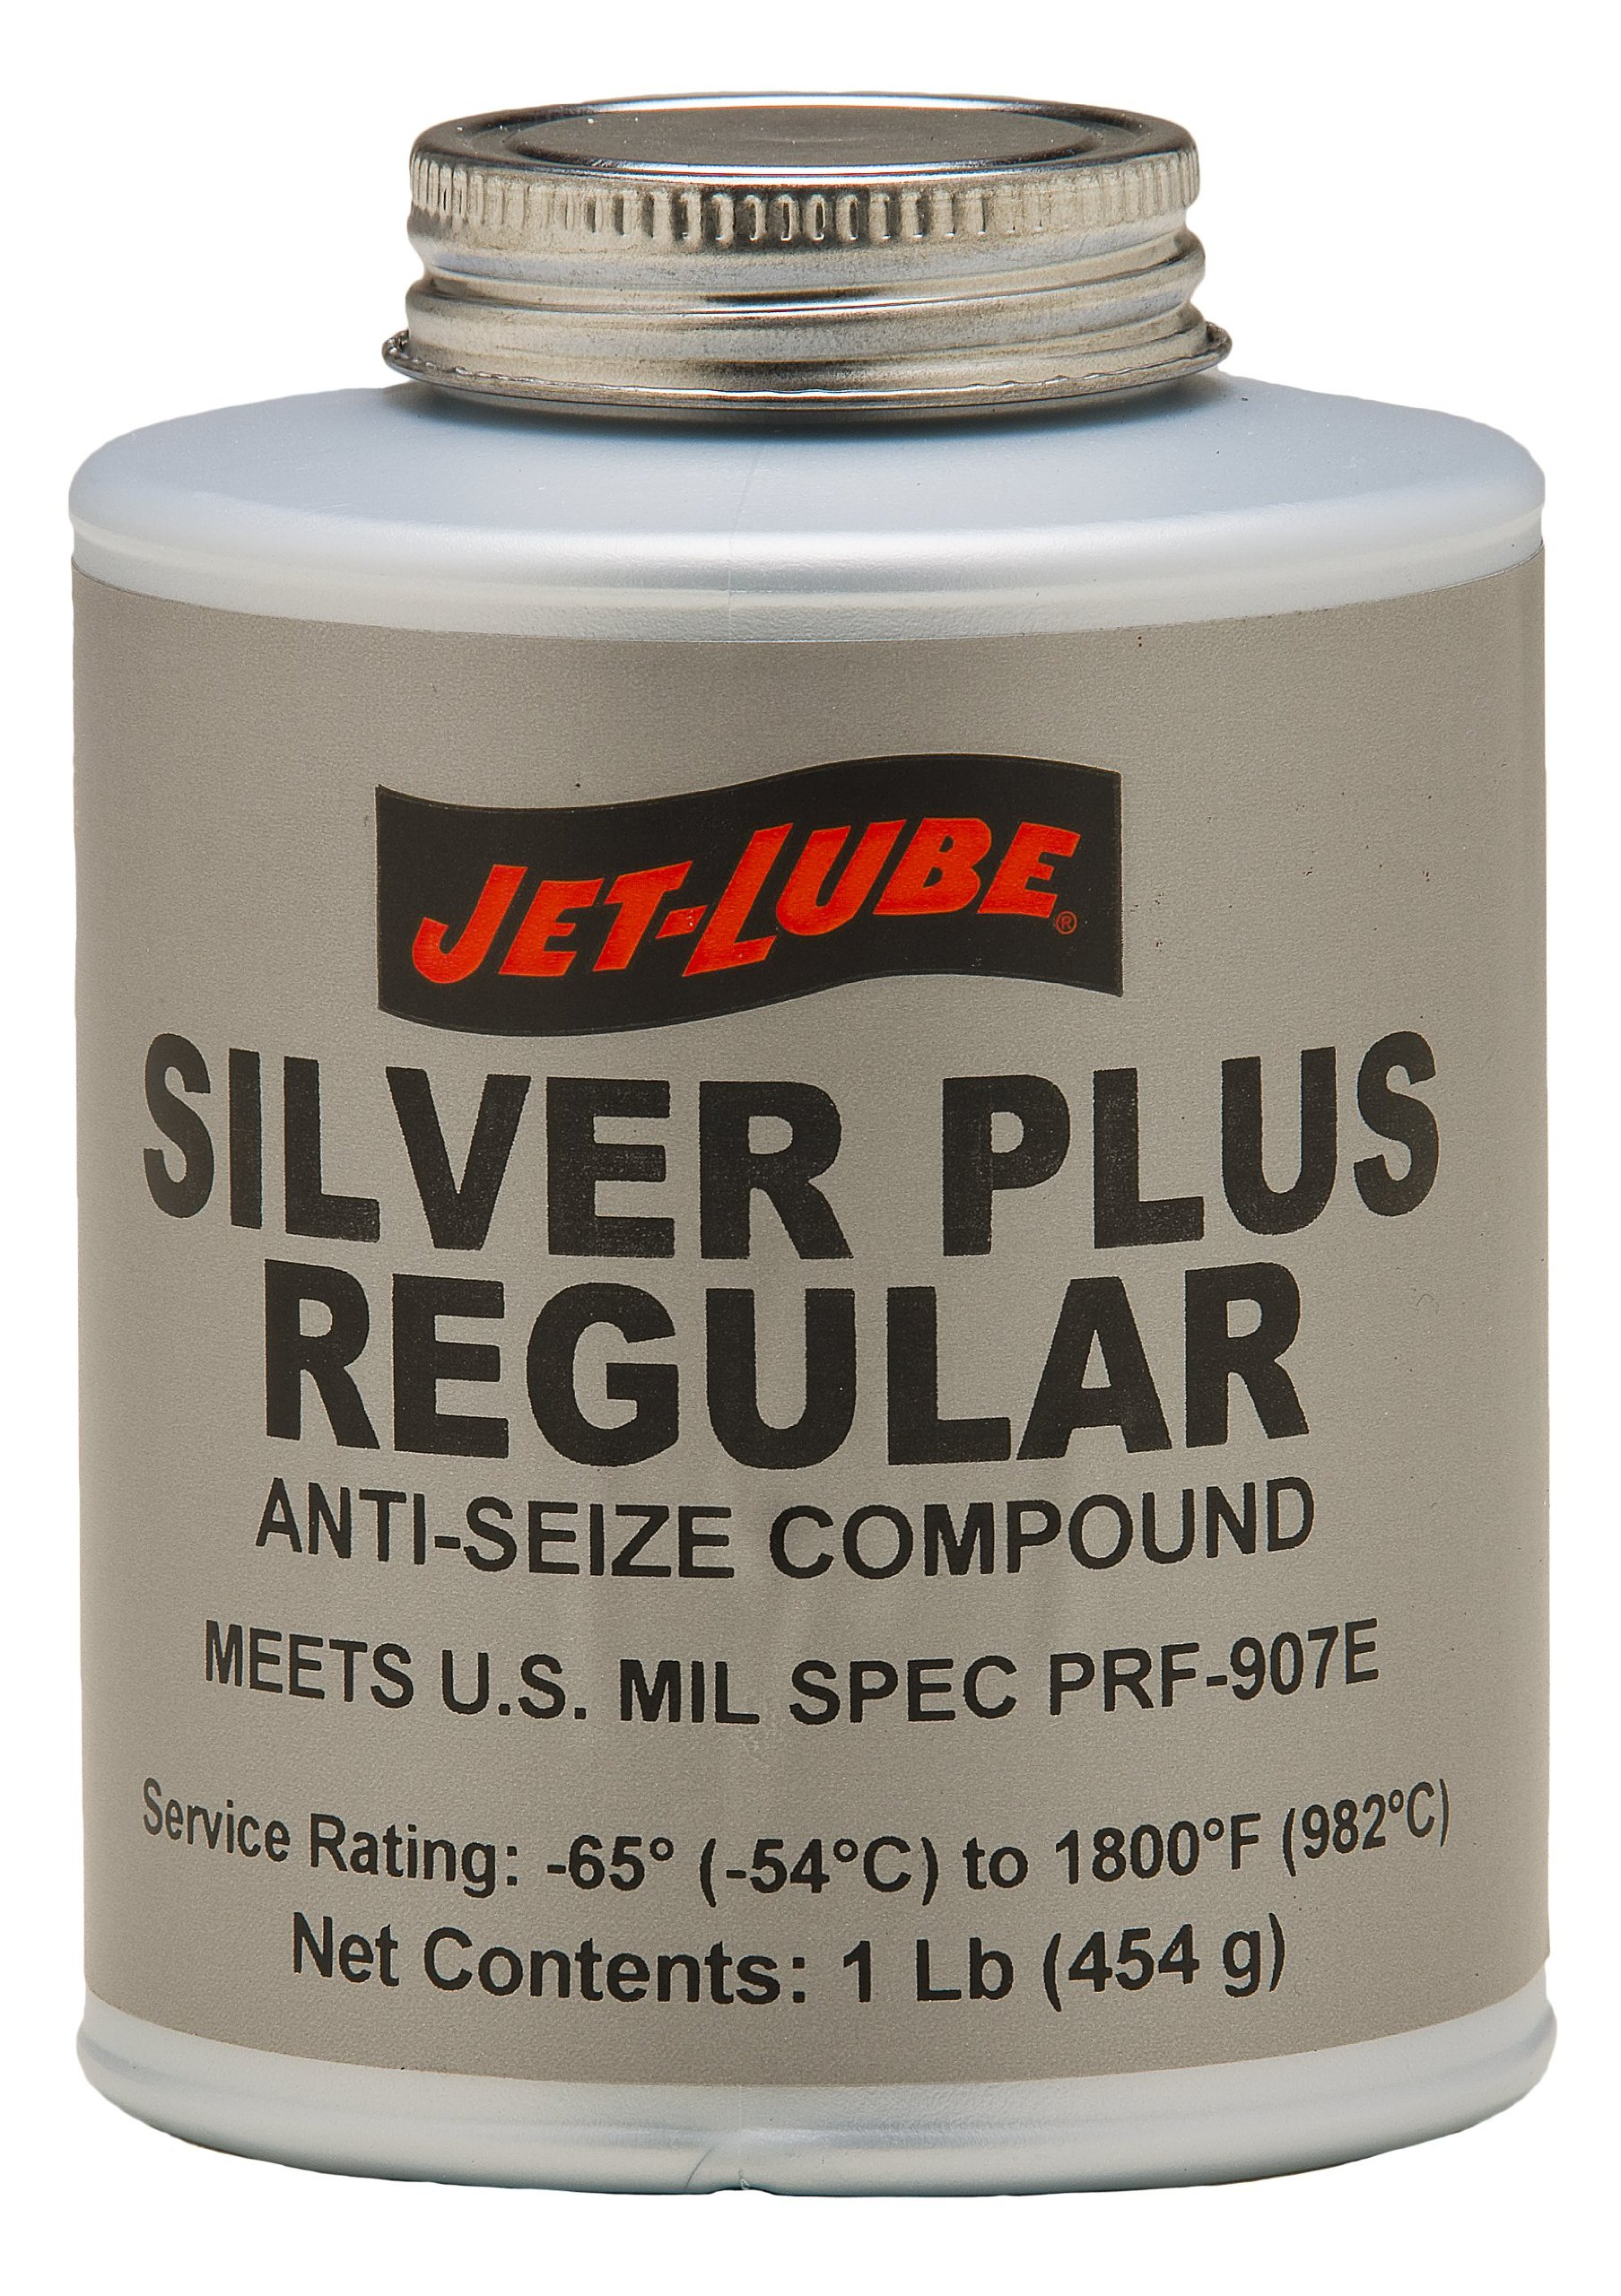 Jet-Lube Silver Plus Regular Grade Anti Seize and Thread Lubricant, 1 lbs Brush Top Can